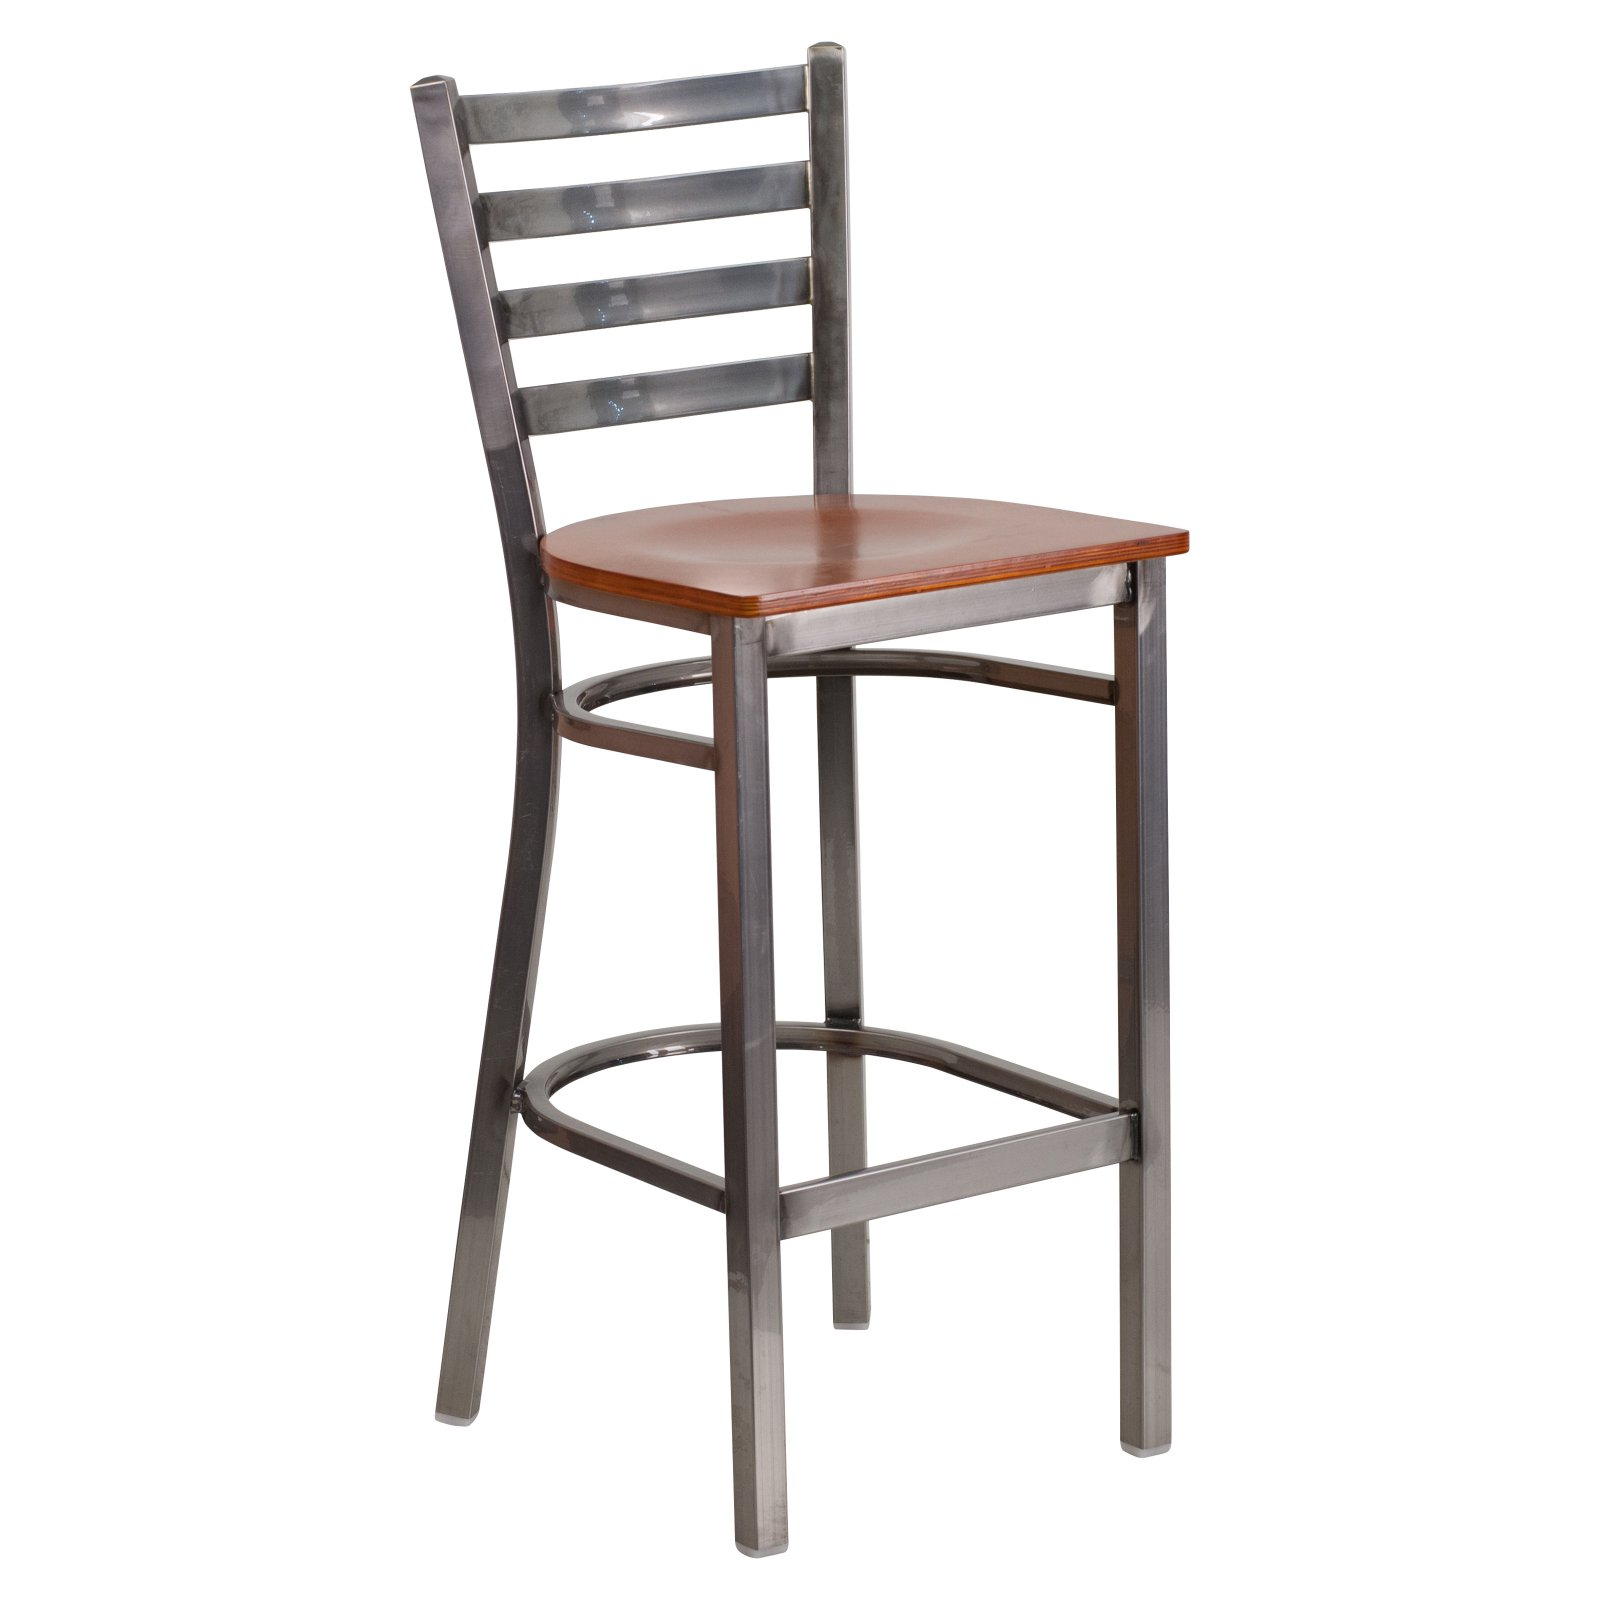 Flash Furniture HERCULES Series Clear Coated Ladder Back Metal Restaurant Barstool, Wood Seat, Multiple Colors